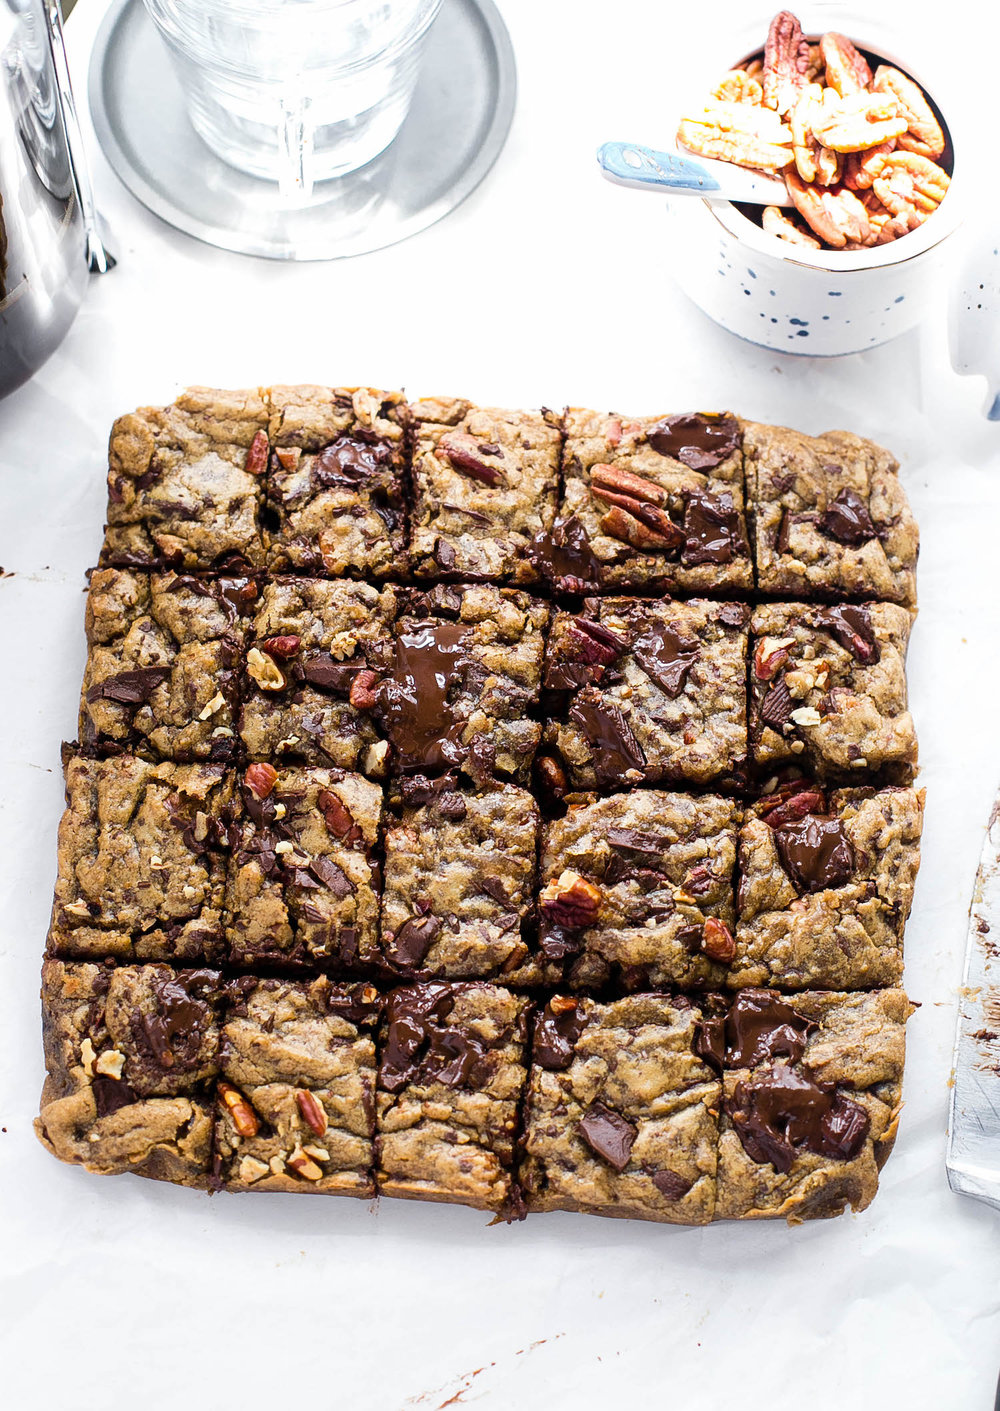 Espresso Chocolate Chip Pecan Blondies: soft, gooey, rich blondies packed with espresso flavor, chocolate chunks, and toasted pecans. So easy! | TrufflesandTrends.com